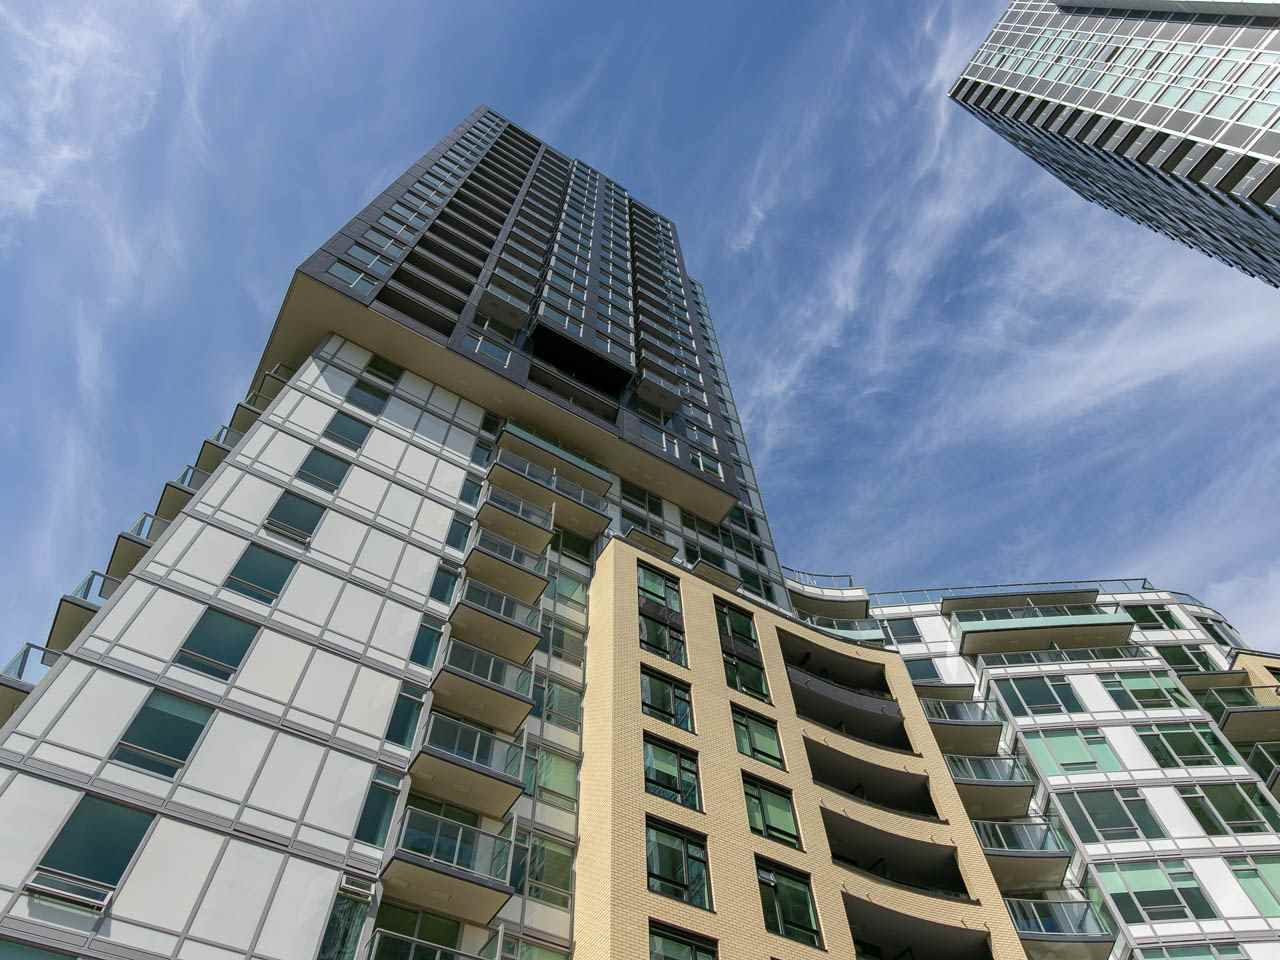 """Main Photo: 710 5470 ORMIDALE Street in Vancouver: Collingwood VE Condo for sale in """"Wall Centre Central Park Tower 3"""" (Vancouver East)  : MLS®# R2275361"""